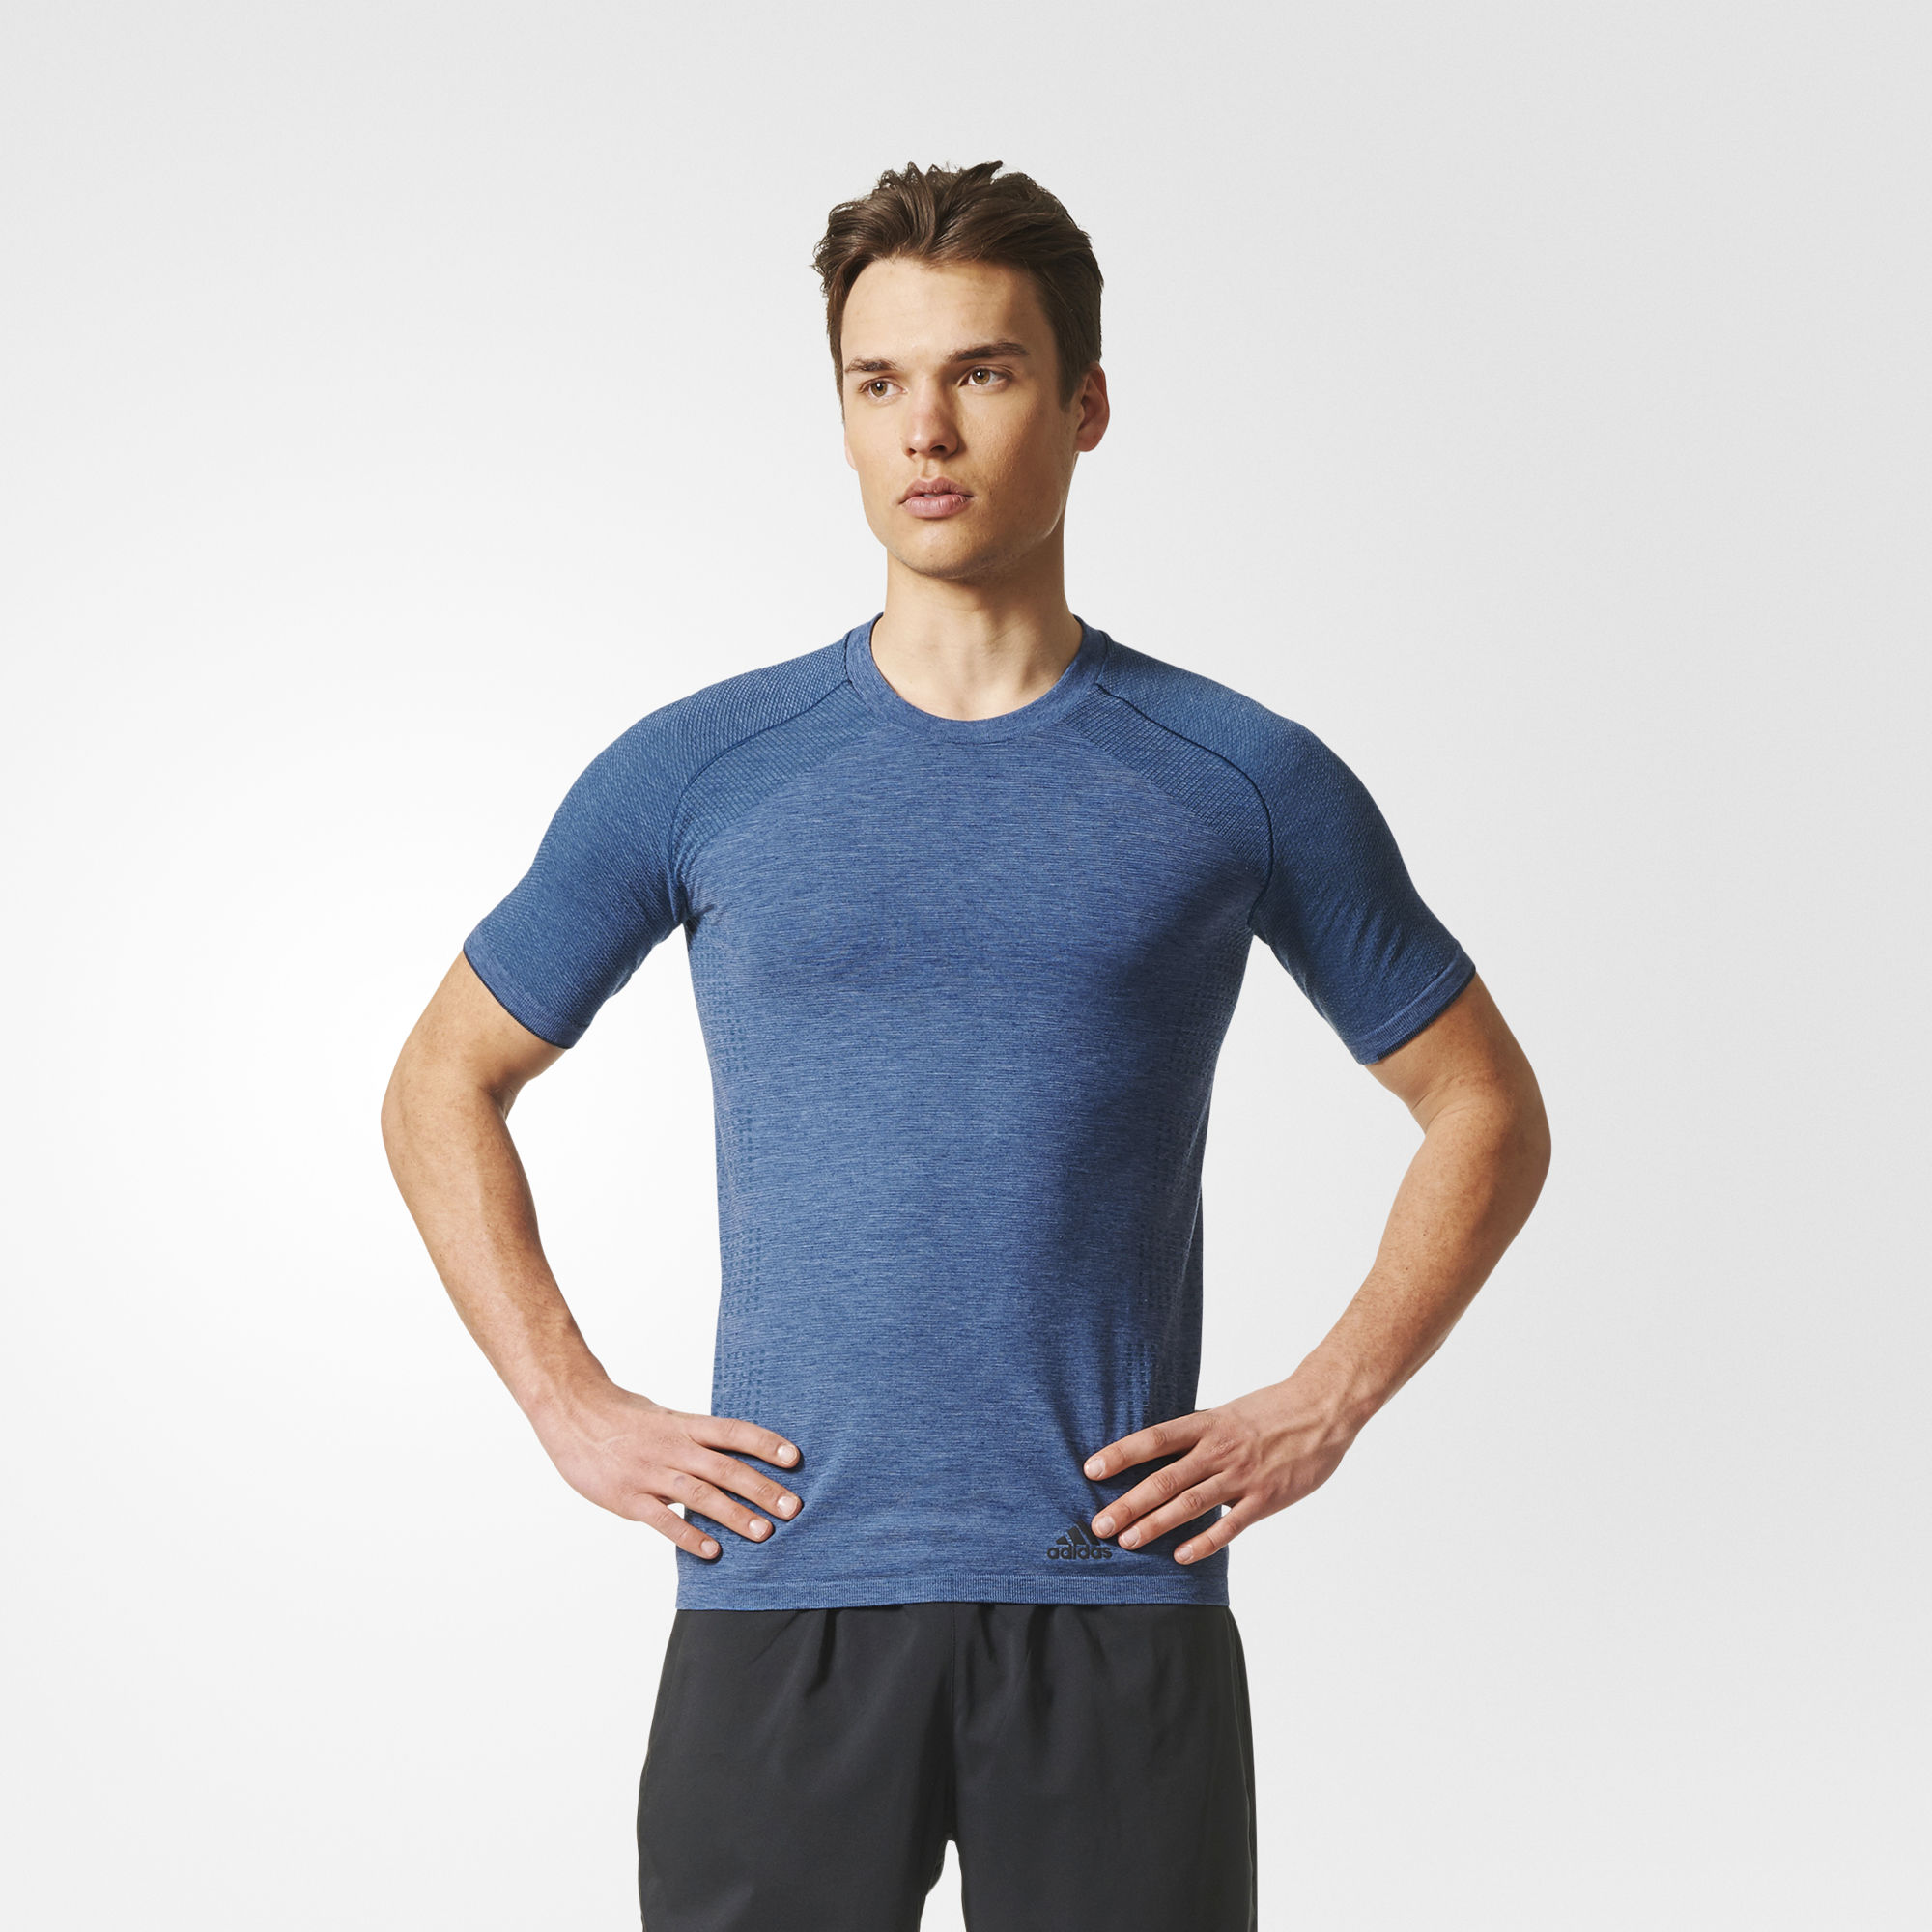 adidas Primeknit Wool Short Sleeve Tee in Blau